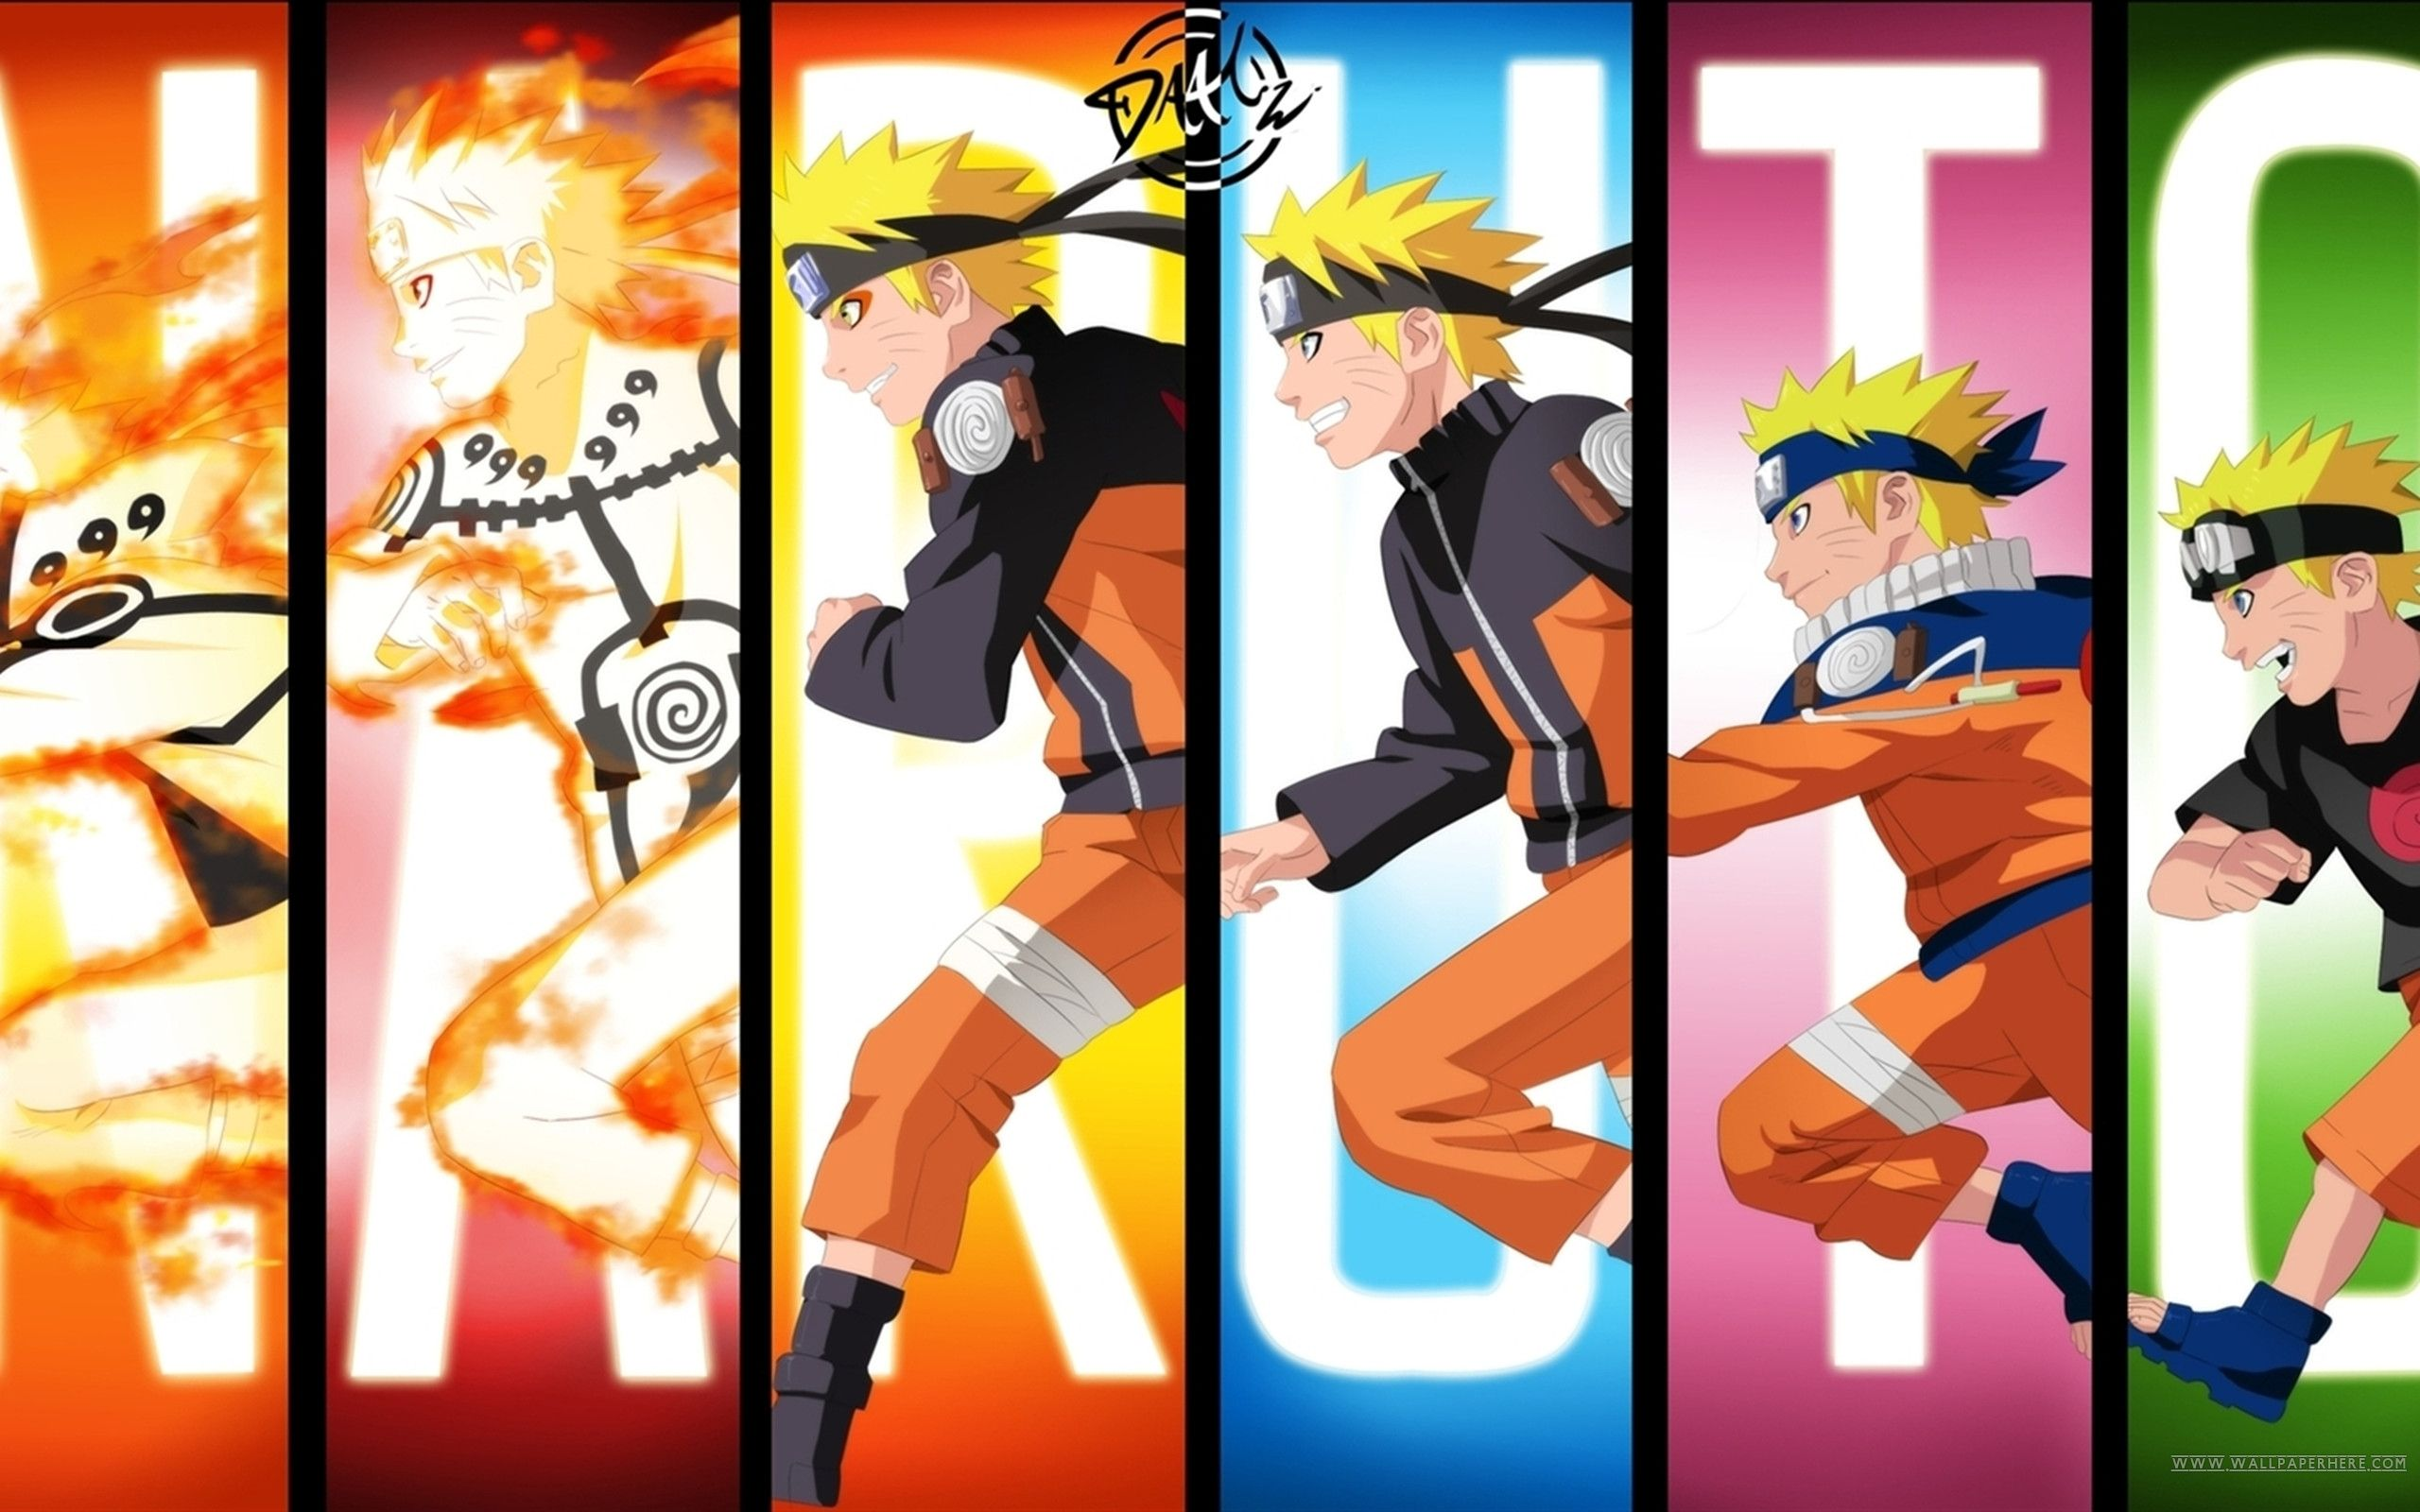 Download Naruto Shippuden Wallpaper Pictures In High Definition Or Wallpaper Naruto Shippuden Naruto Wallpaper Best Naruto Wallpapers